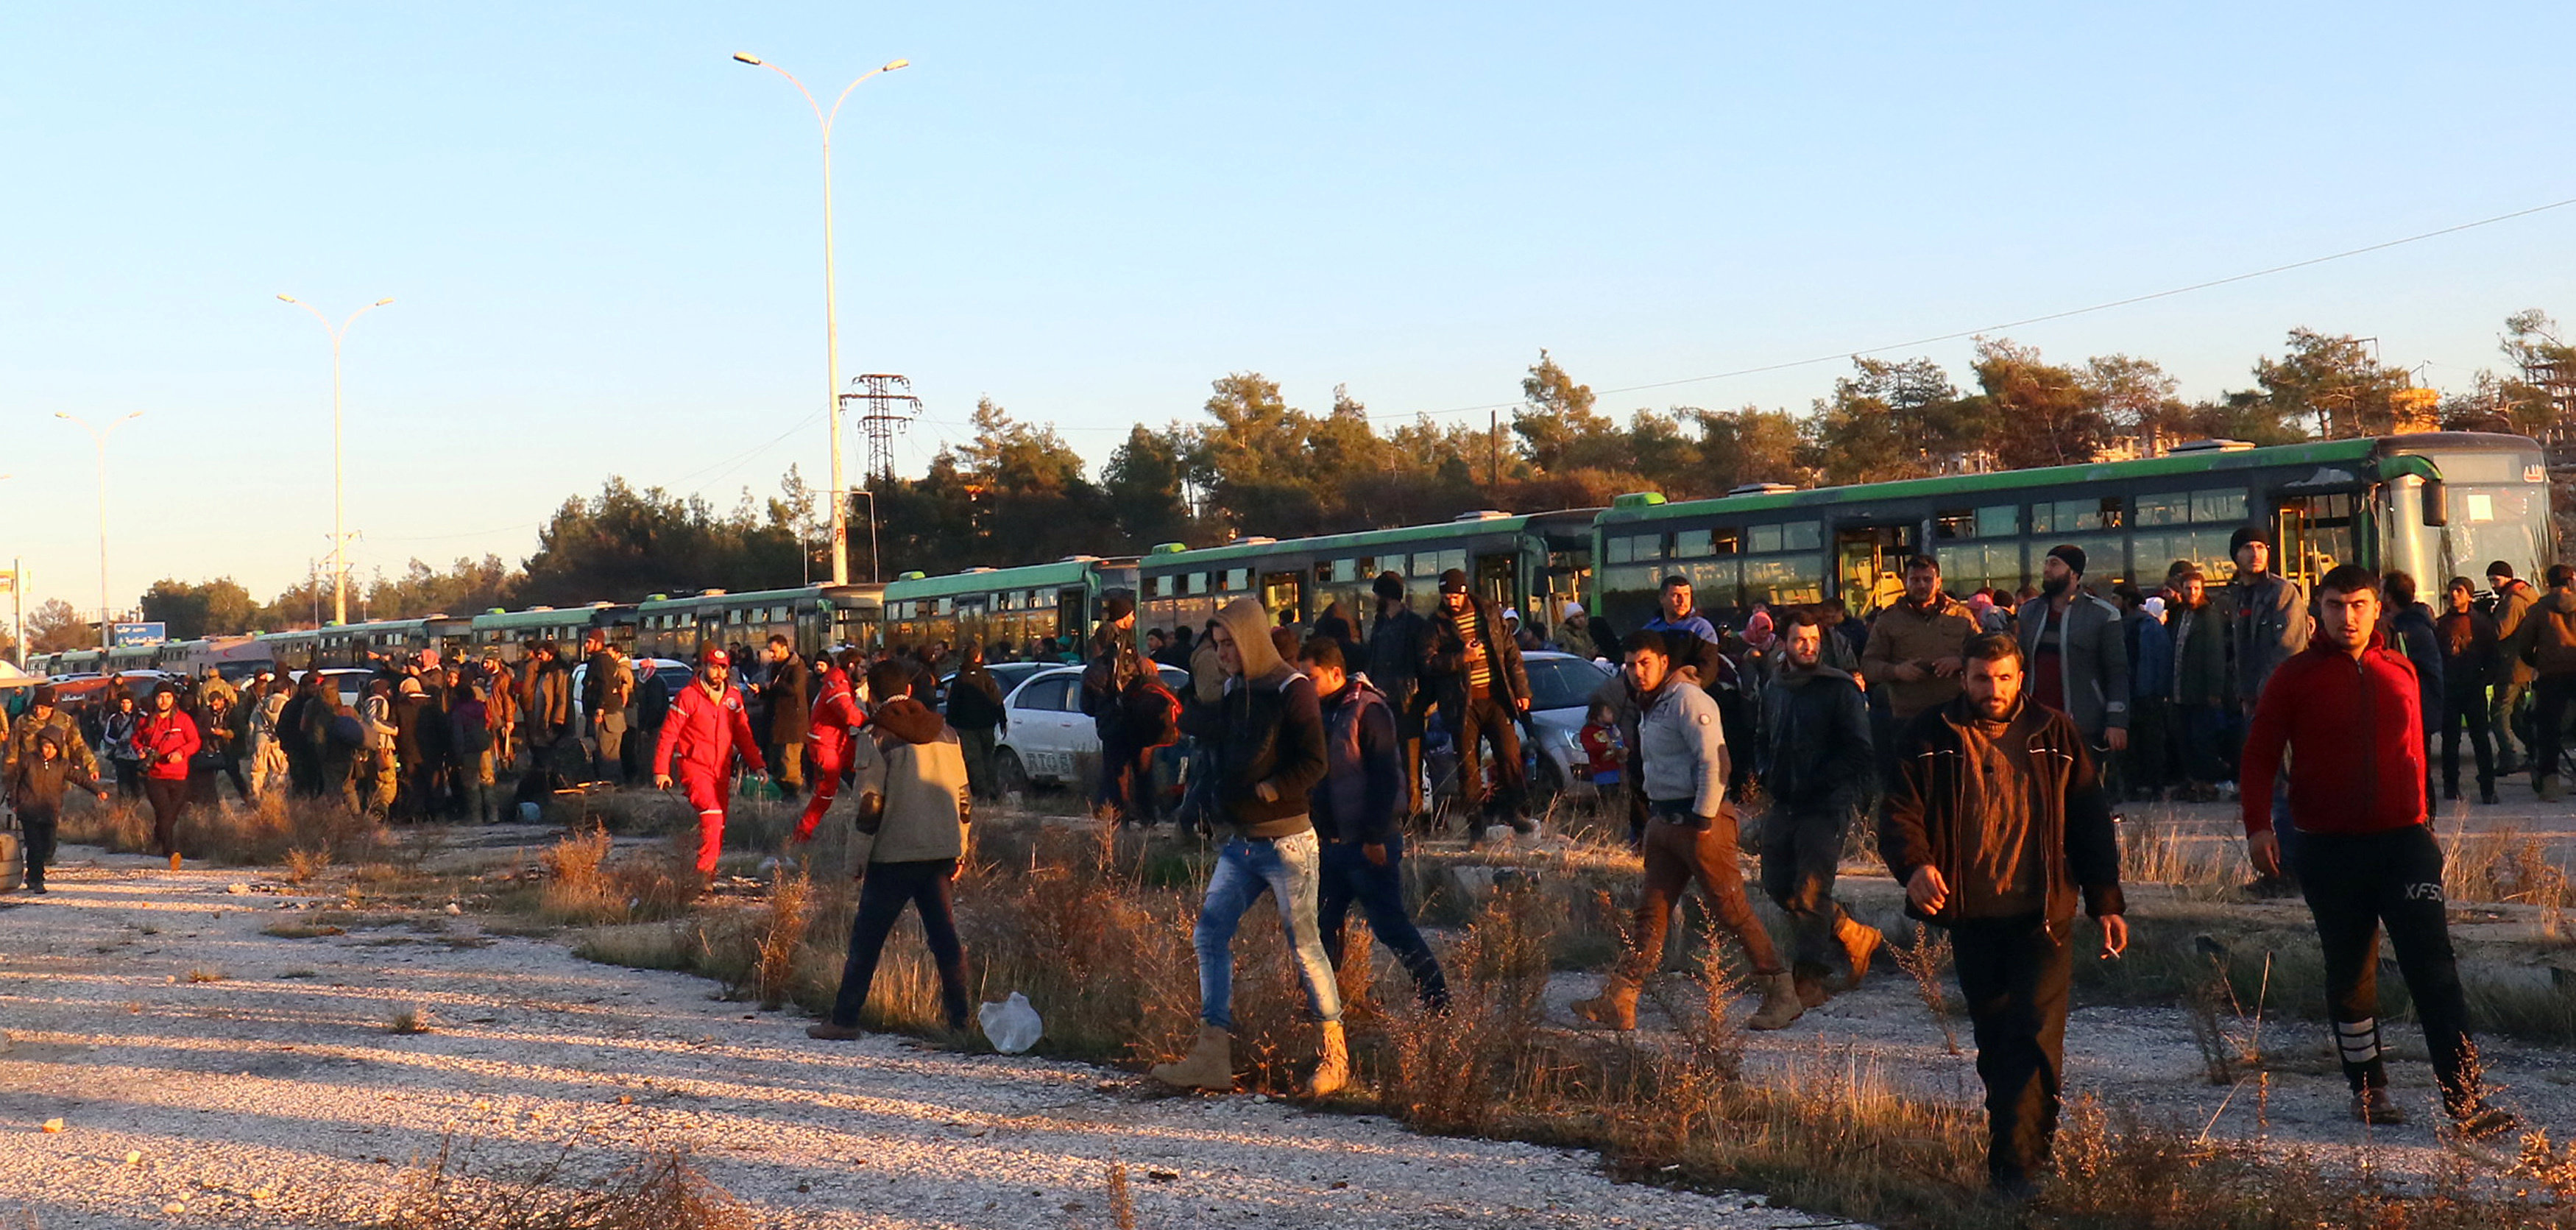 Evacuees from rebel-held east Aleppo, disembark from buses upon their arrival to the town of al-Rashideen, which is held by insurgents, Syria December 15, 2016.